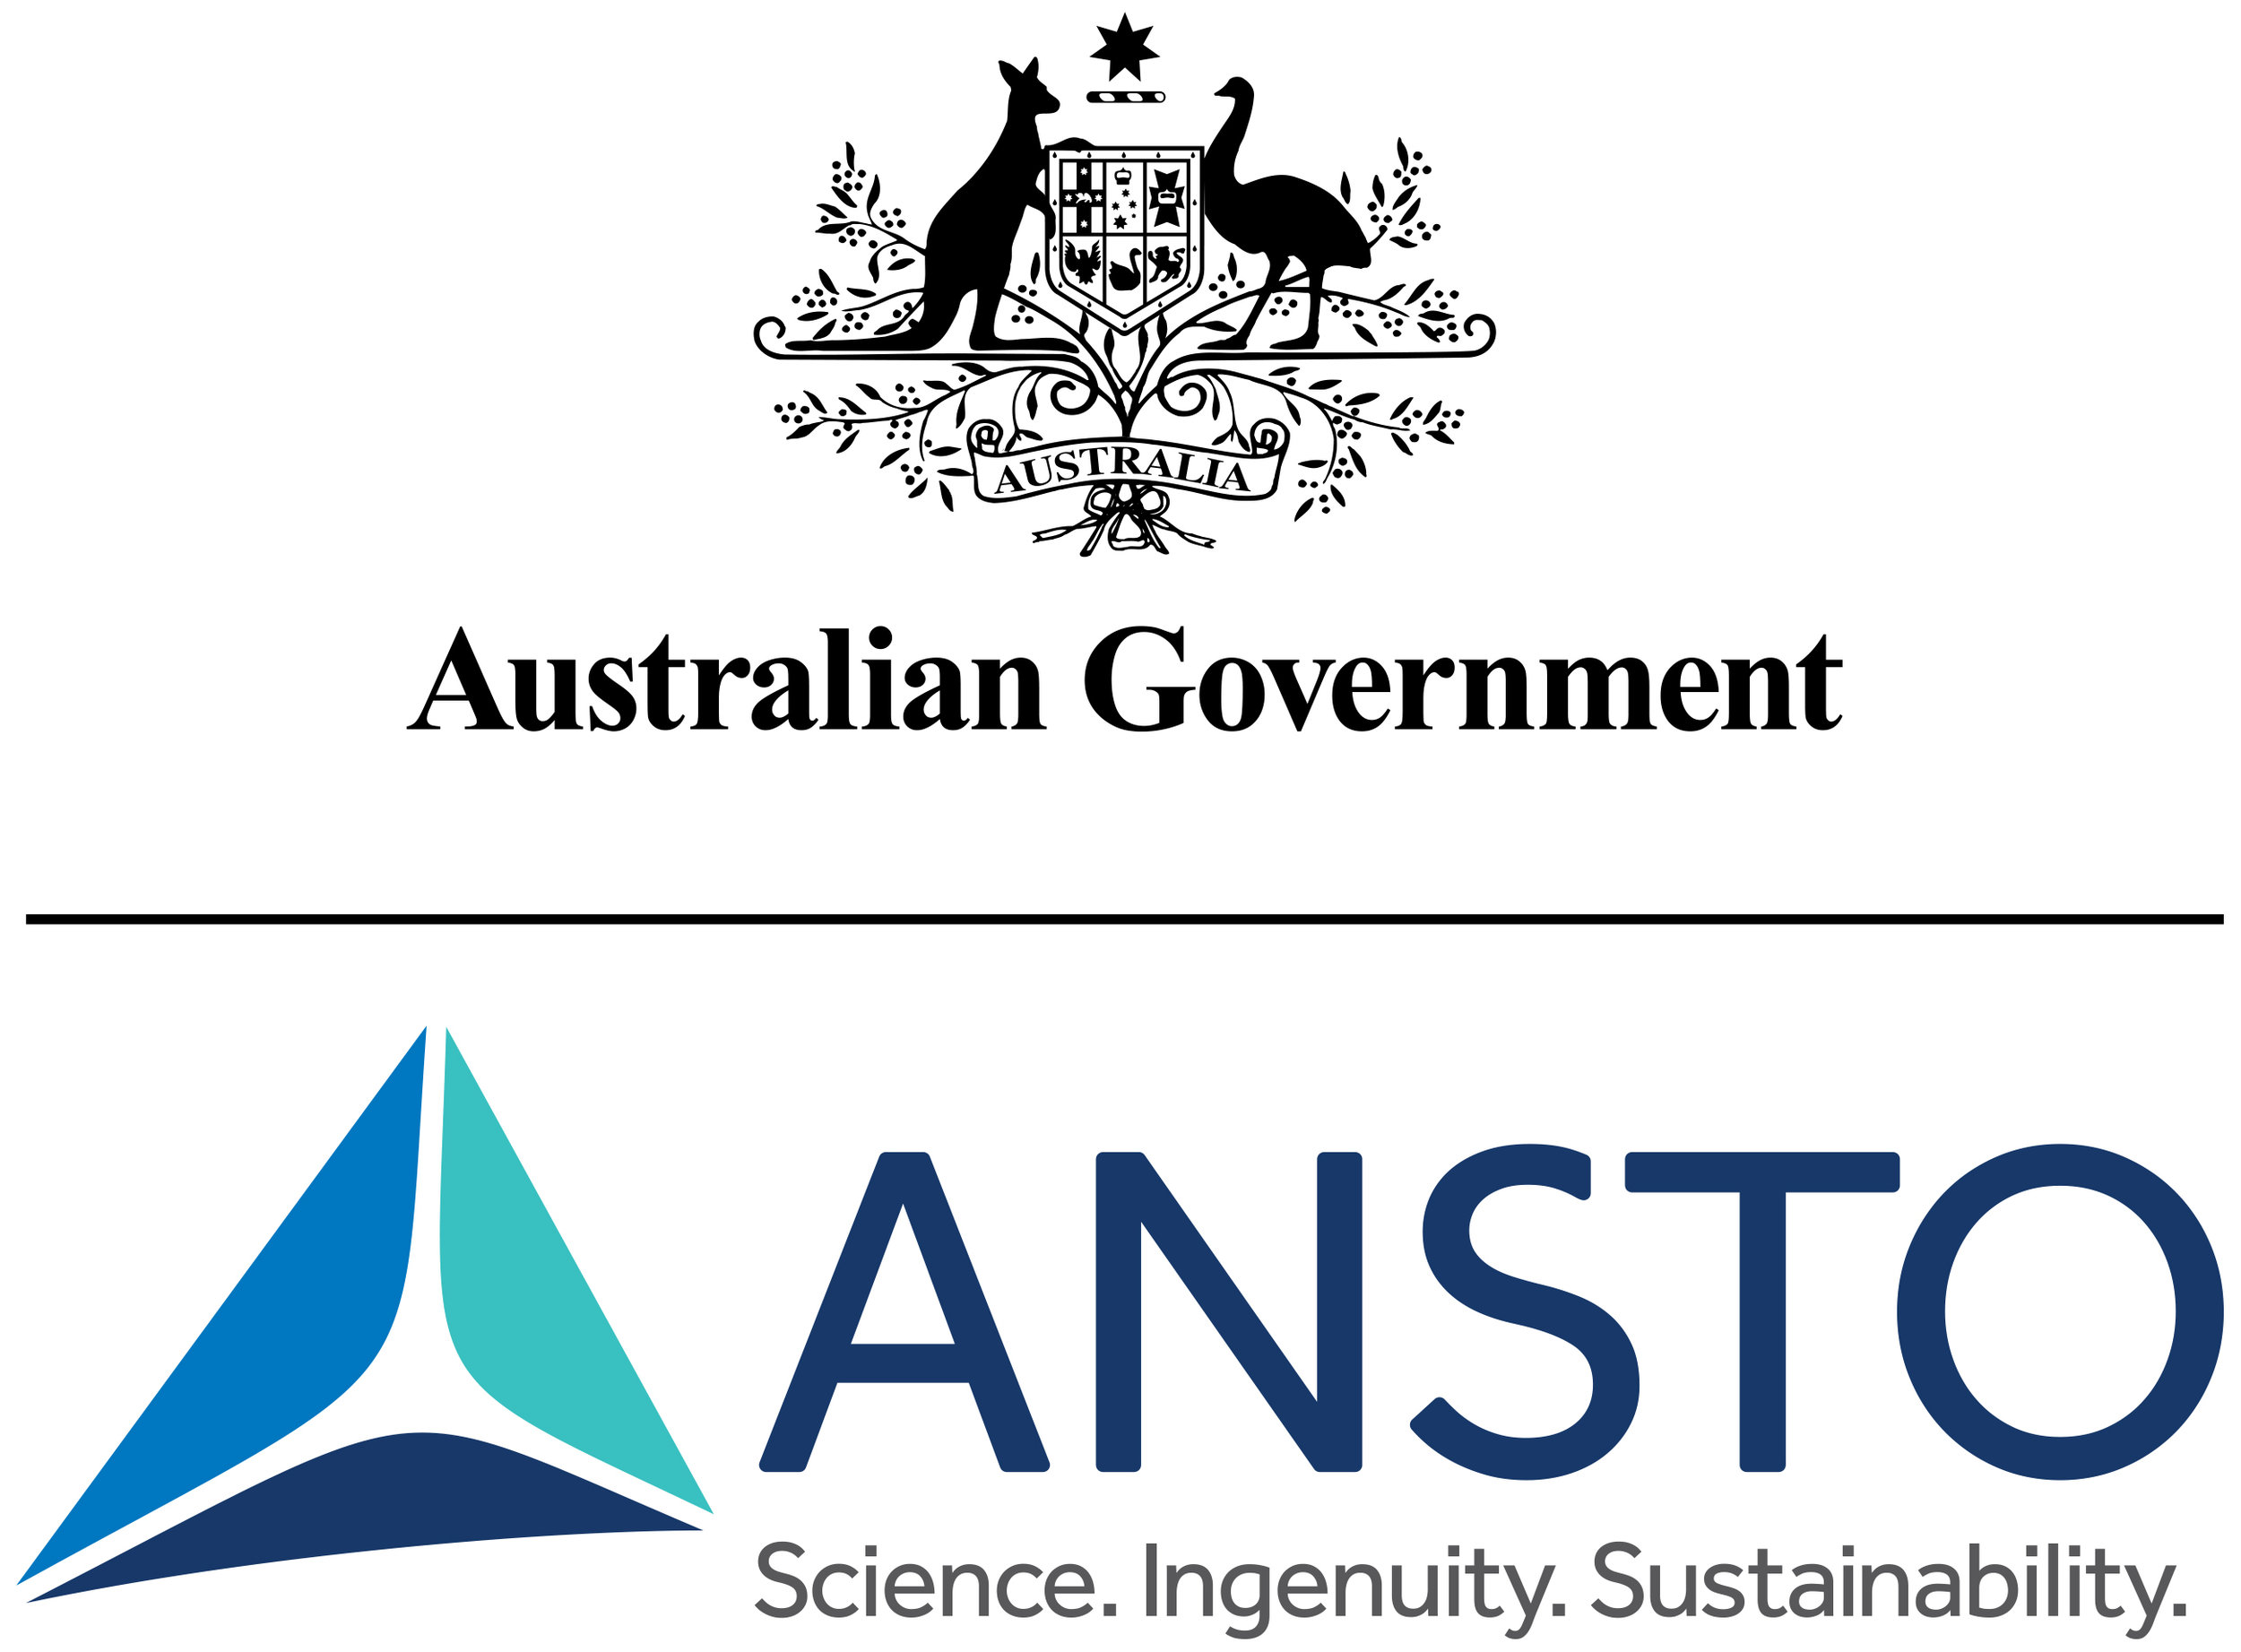 ANSTO-LOGO-Stacked-With-Tagline.jpg